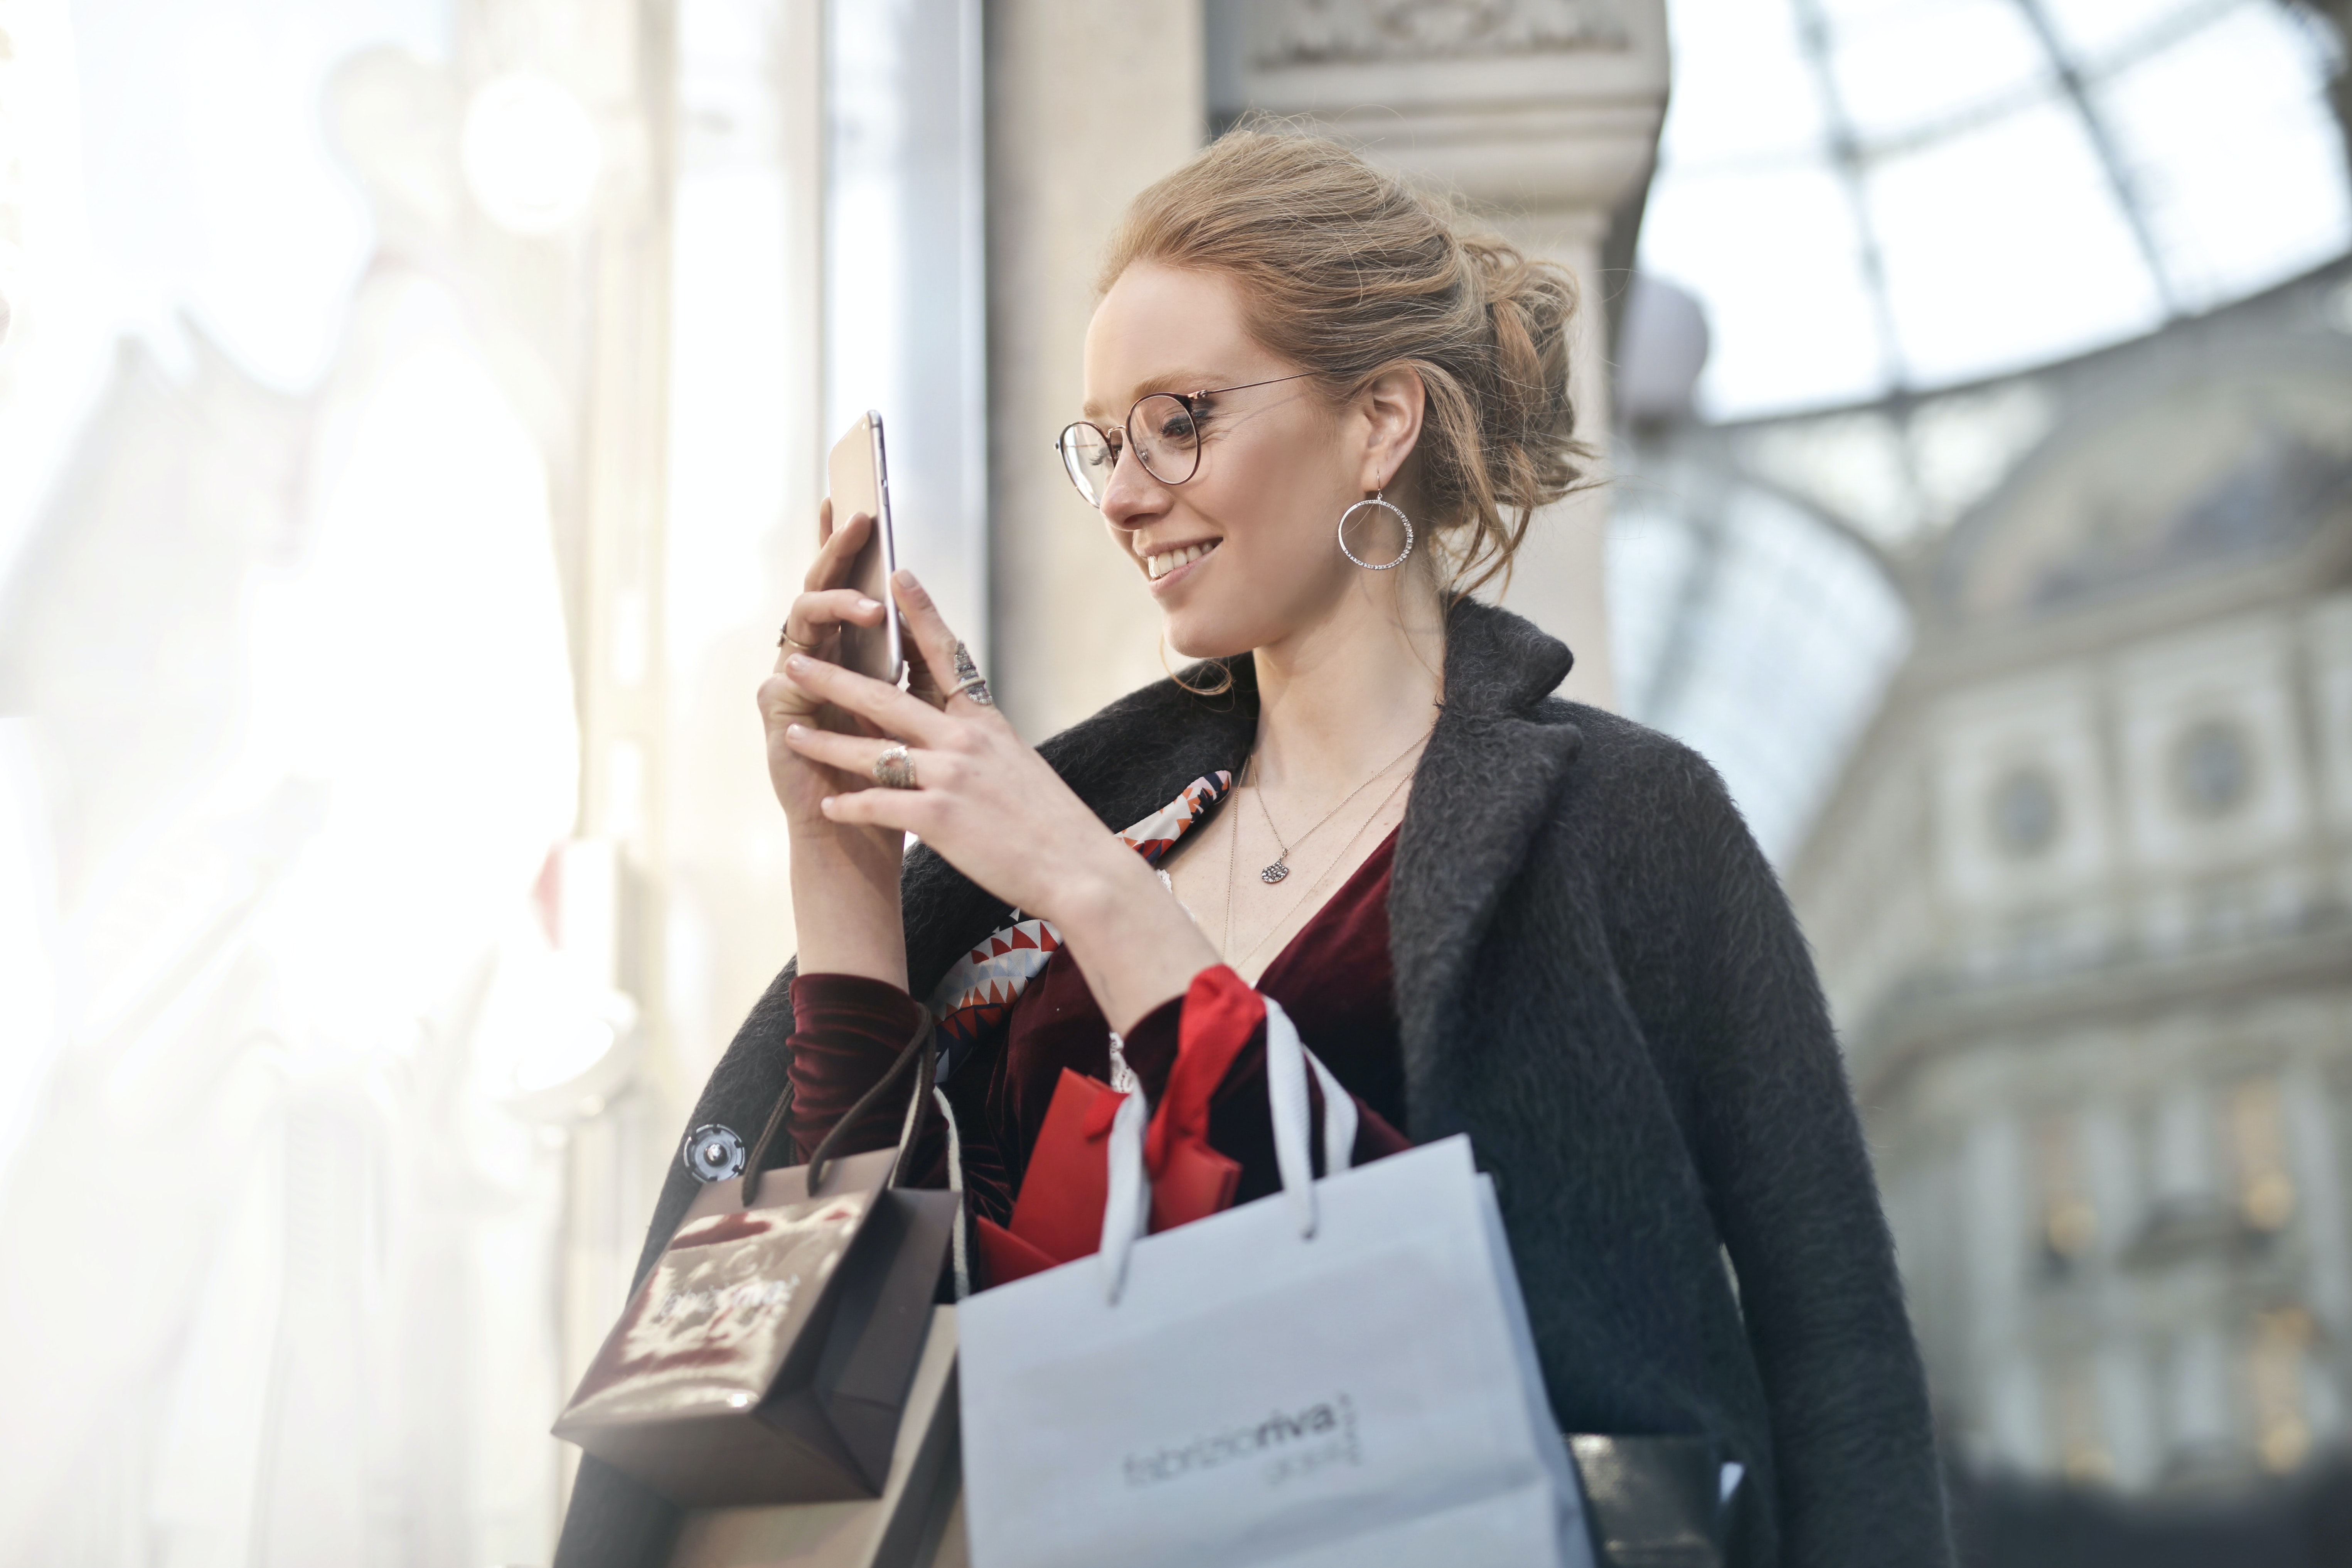 Selling something? Tap into consumer arrogance